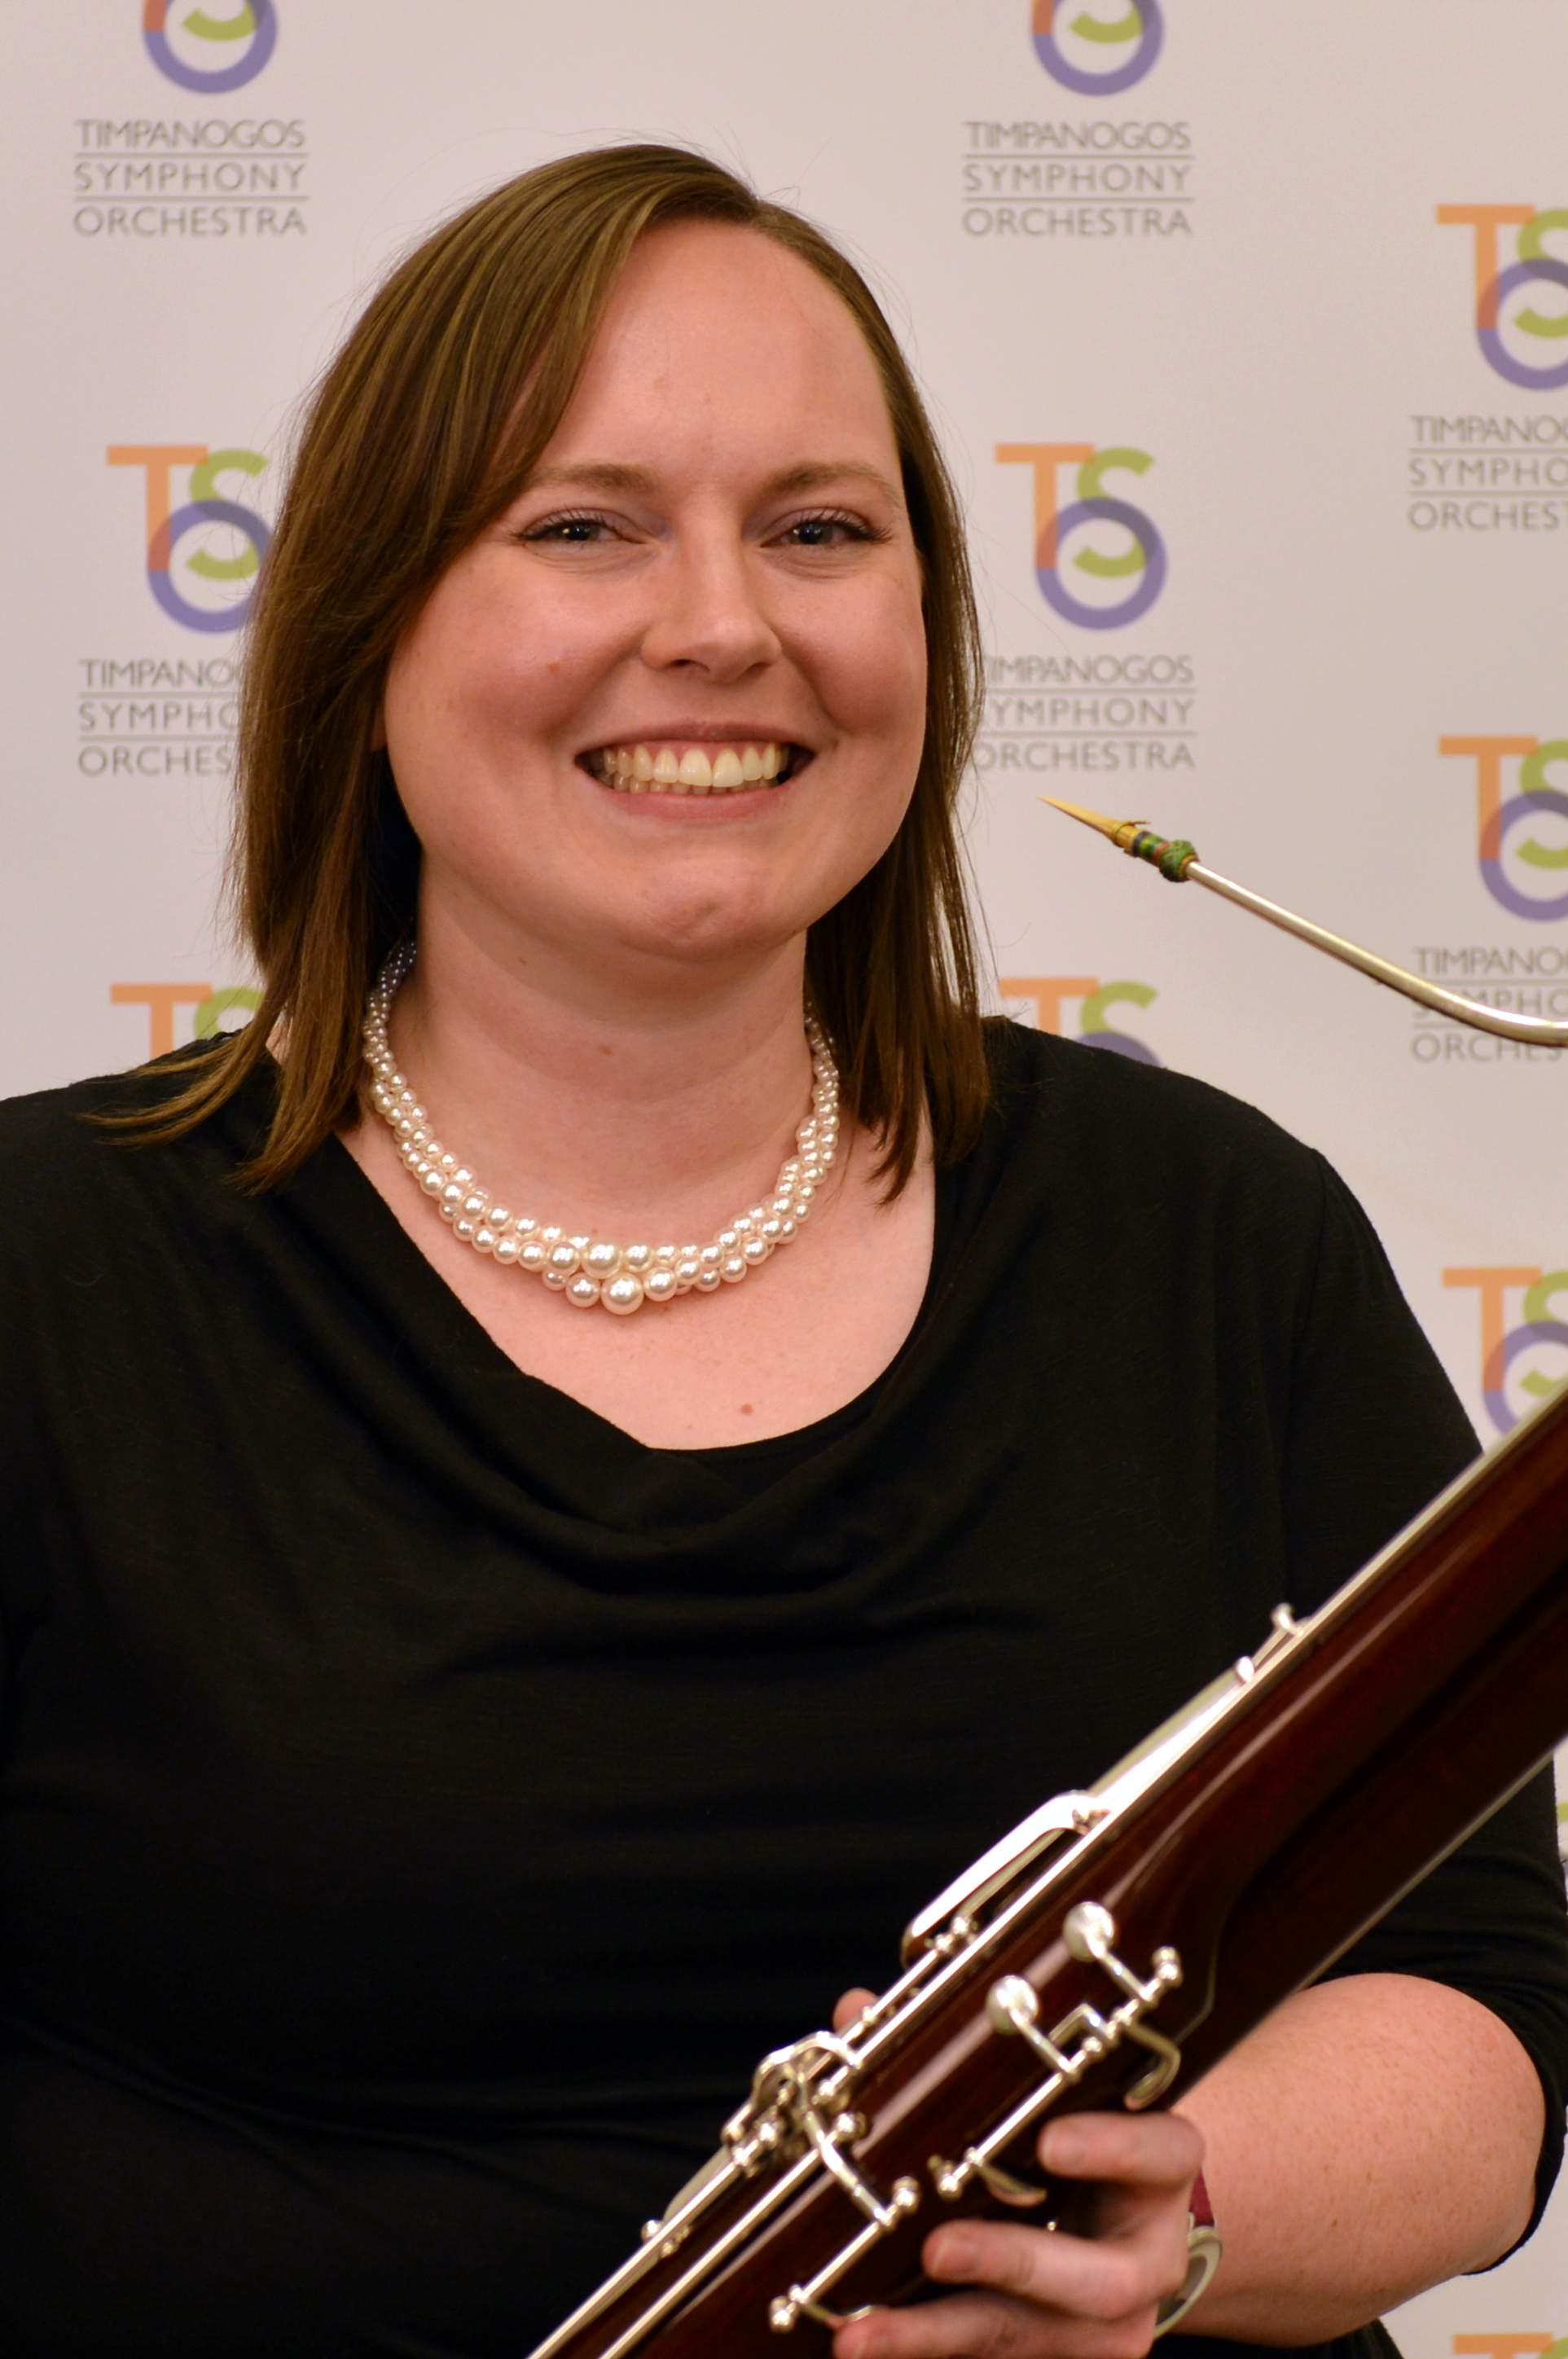 Christine Roach , 2nd Bassoon